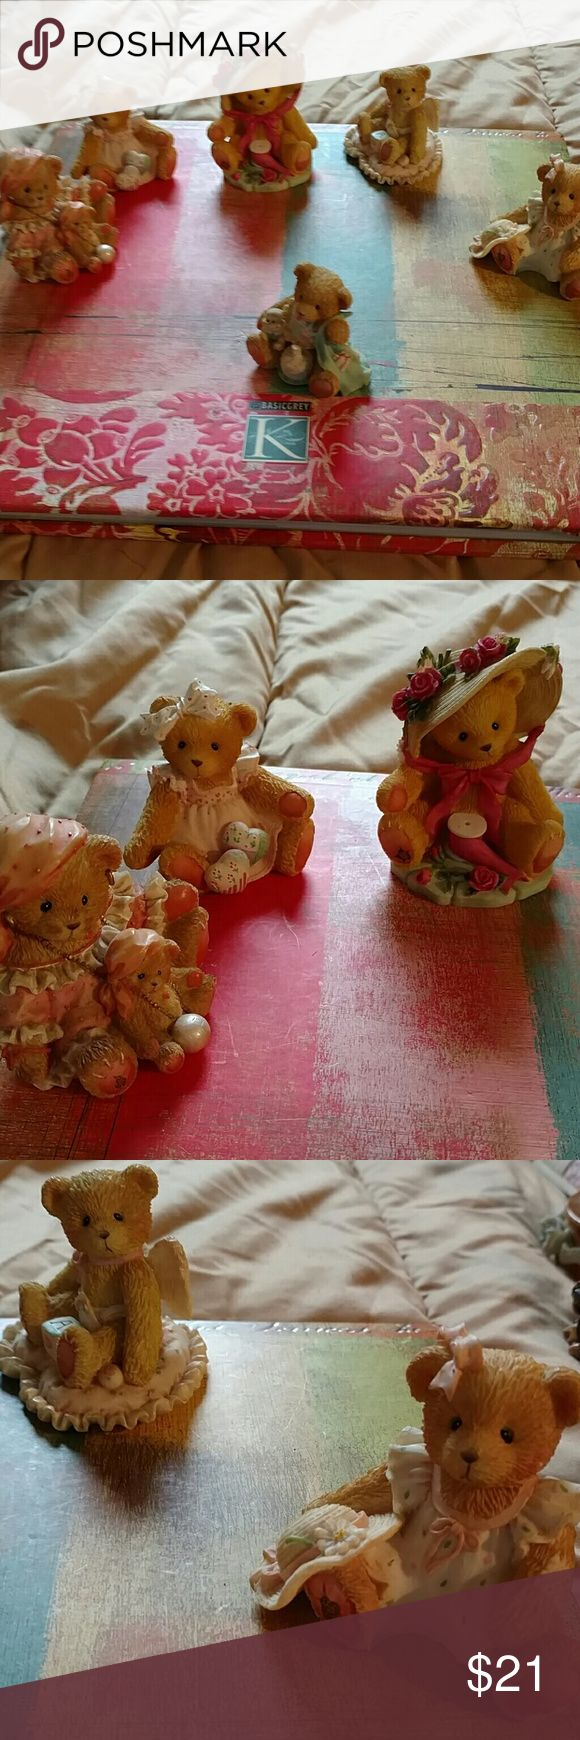 6 piece cherish Teddy home figurines Beautiful condition place a picture number 4 one does have the birthday candle chip. 6 piece cherished Teddy home figurine Other